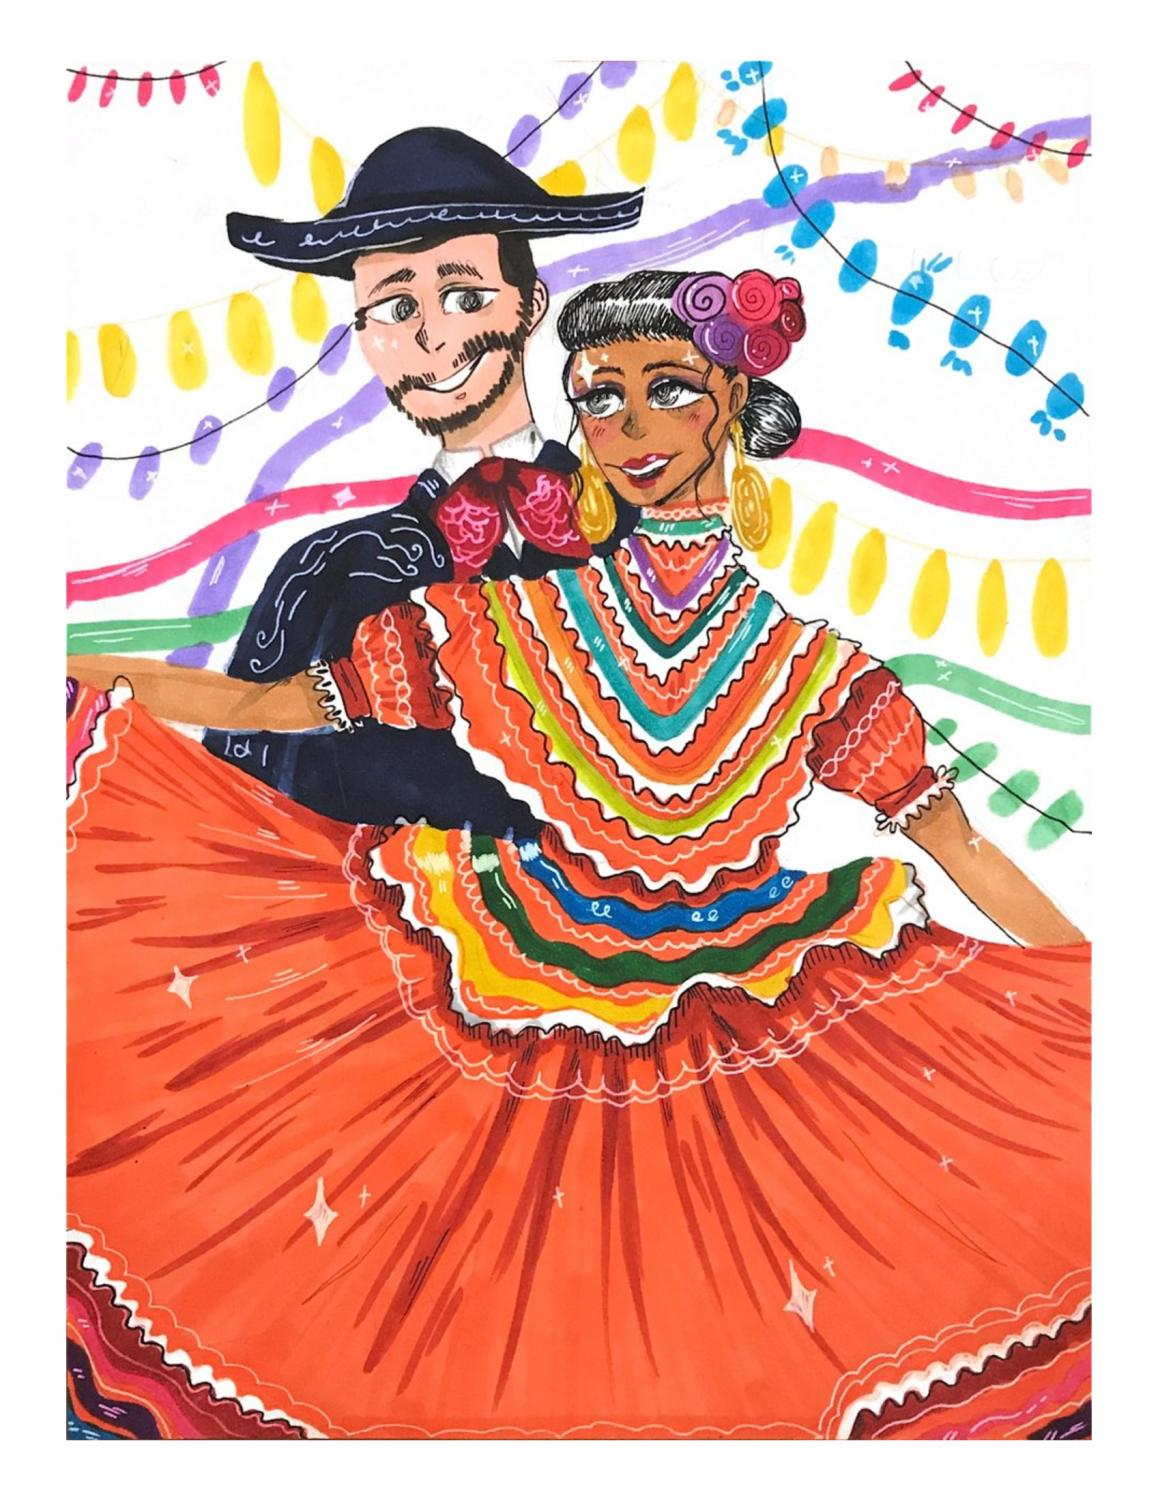 The Baile Folklorico club honors heritage through elaborate costumes and artistic dances.